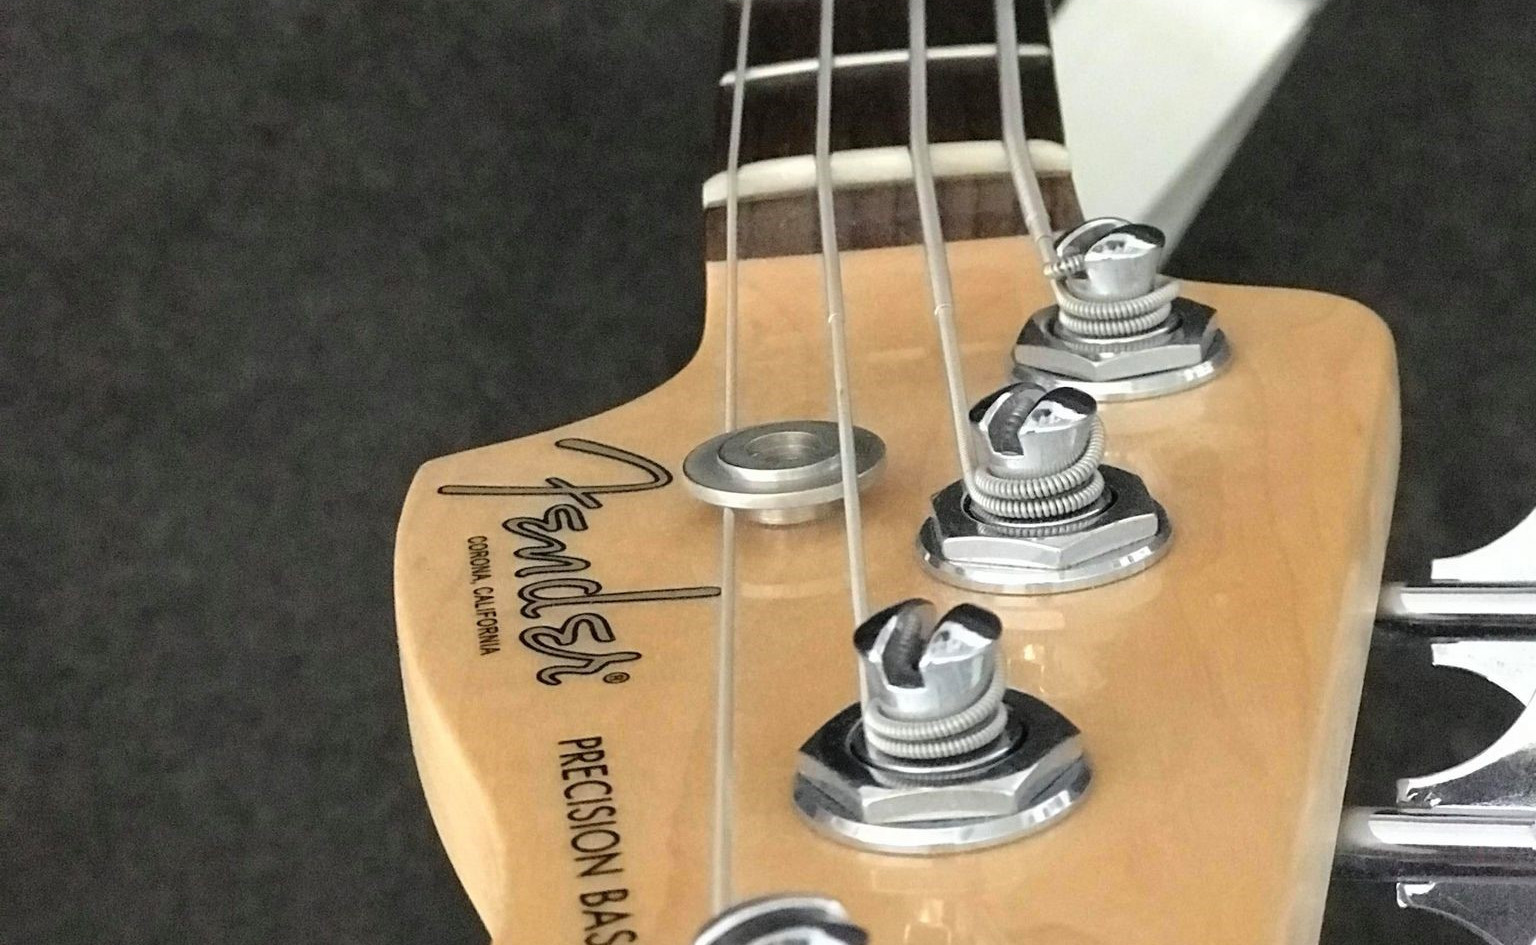 Fender American P-Bass - A classic that never gets old.